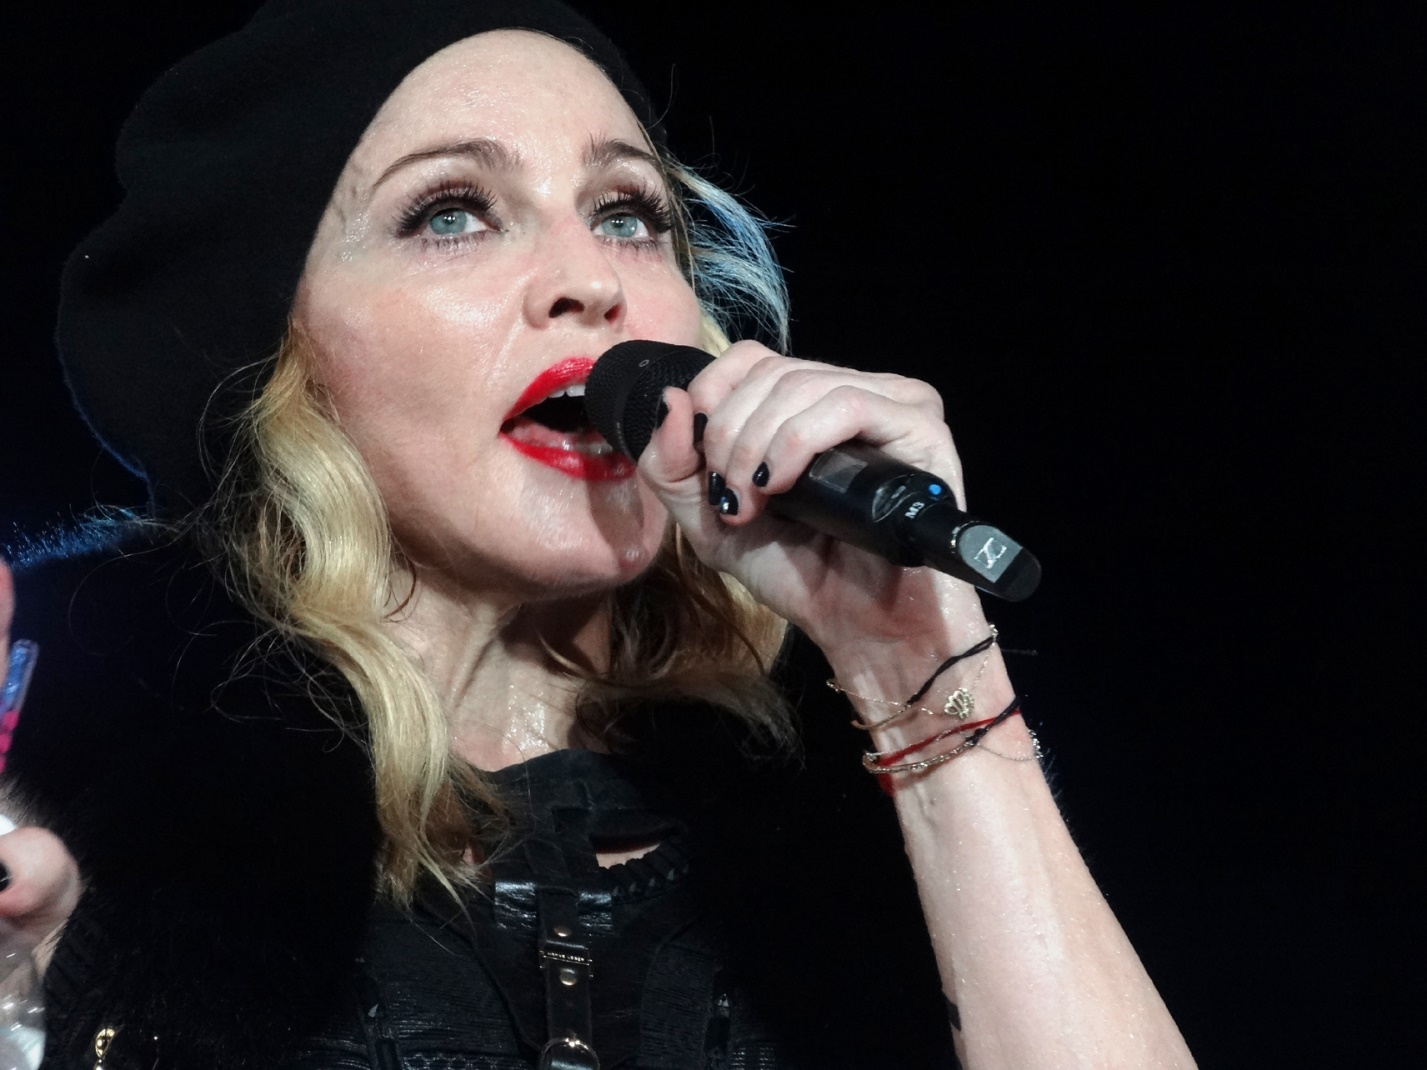 Madonna accuses Lady Gaga of stealing her image